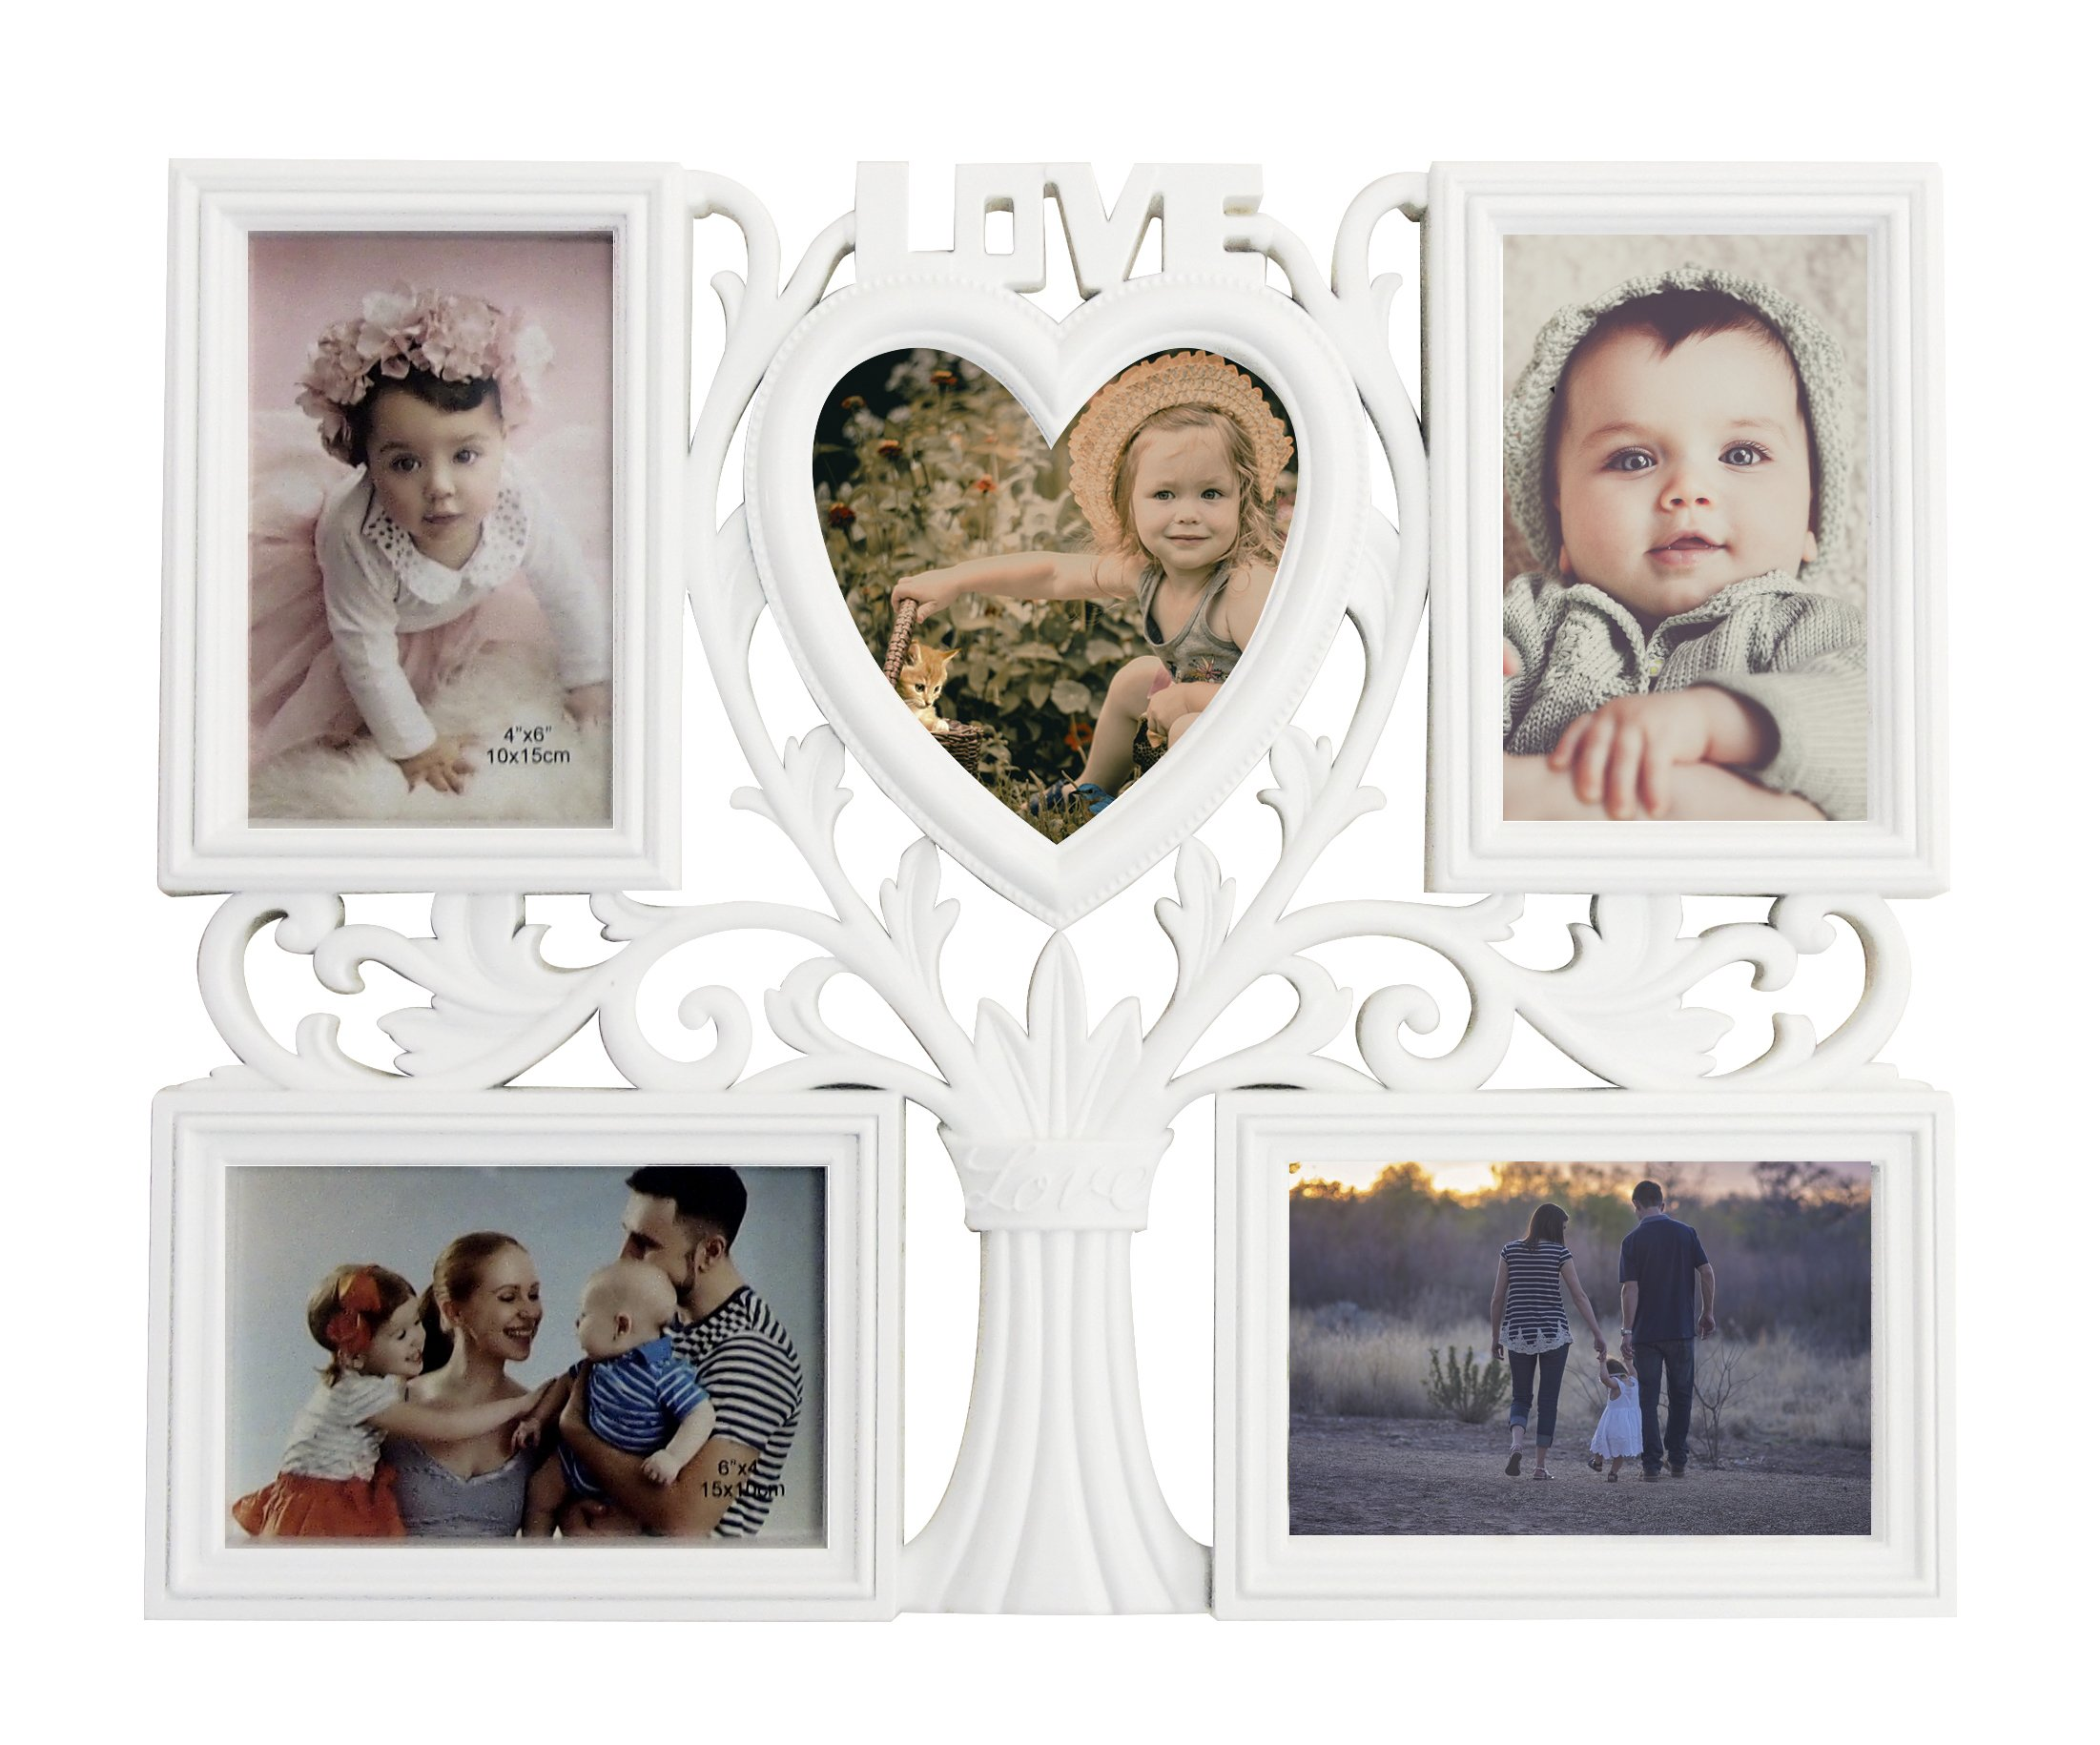 Decorative Wall Hanging Love Tree Collage Picture Frame 5 Option 4-openings 4'' x 6'' & 1 opening 4'' x 4'', White